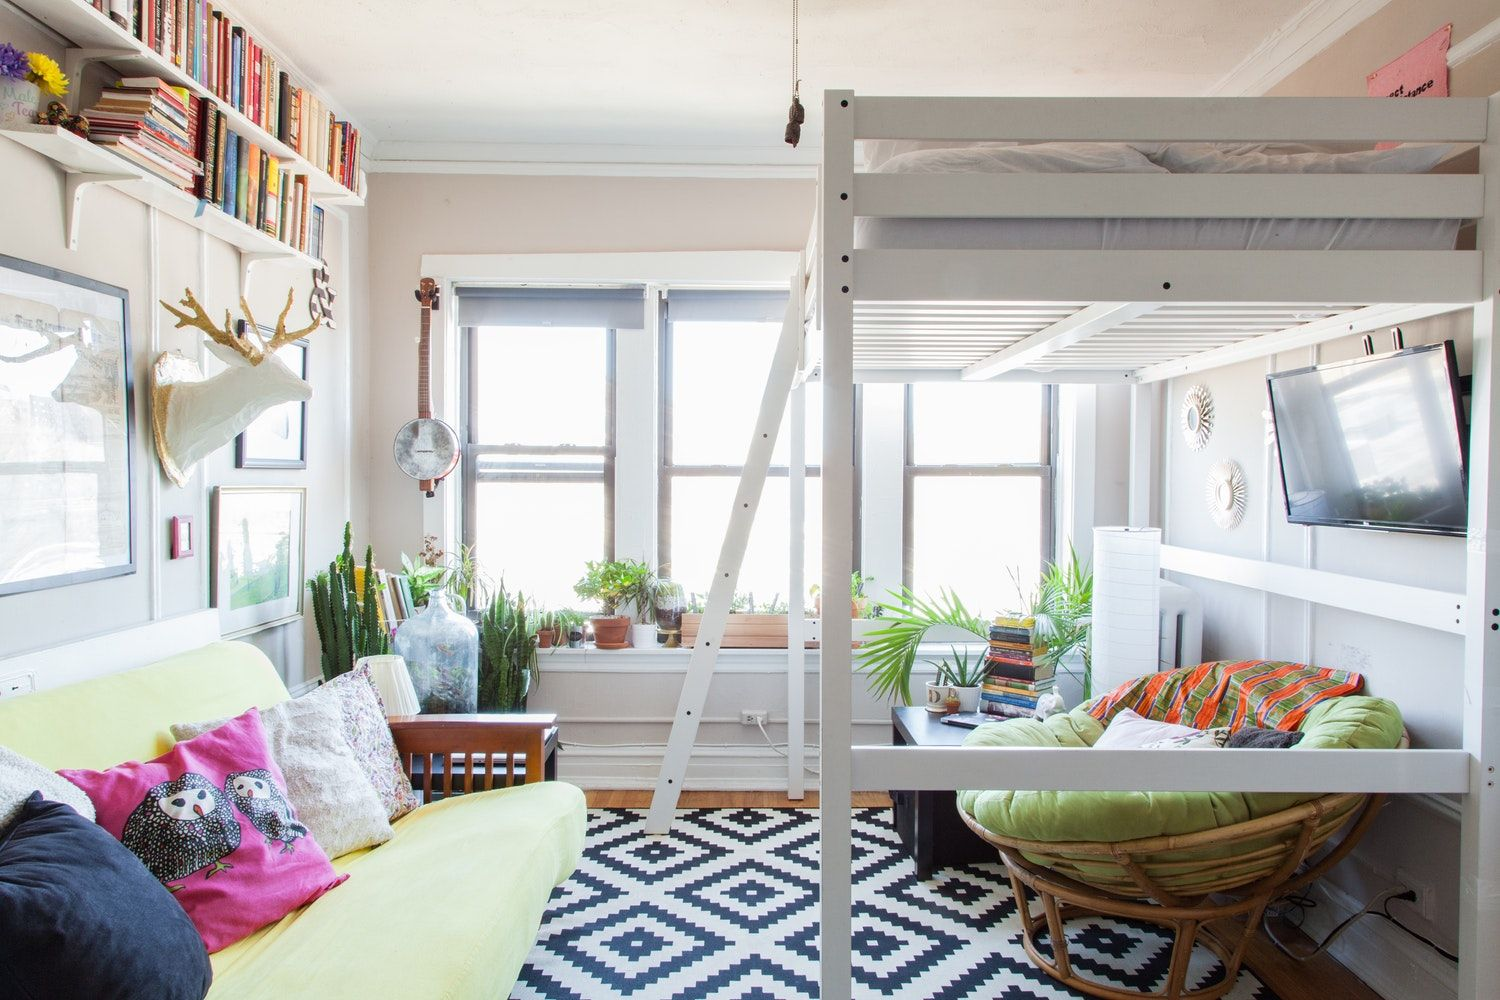 Small room loft bed ideas  A SquareFoot